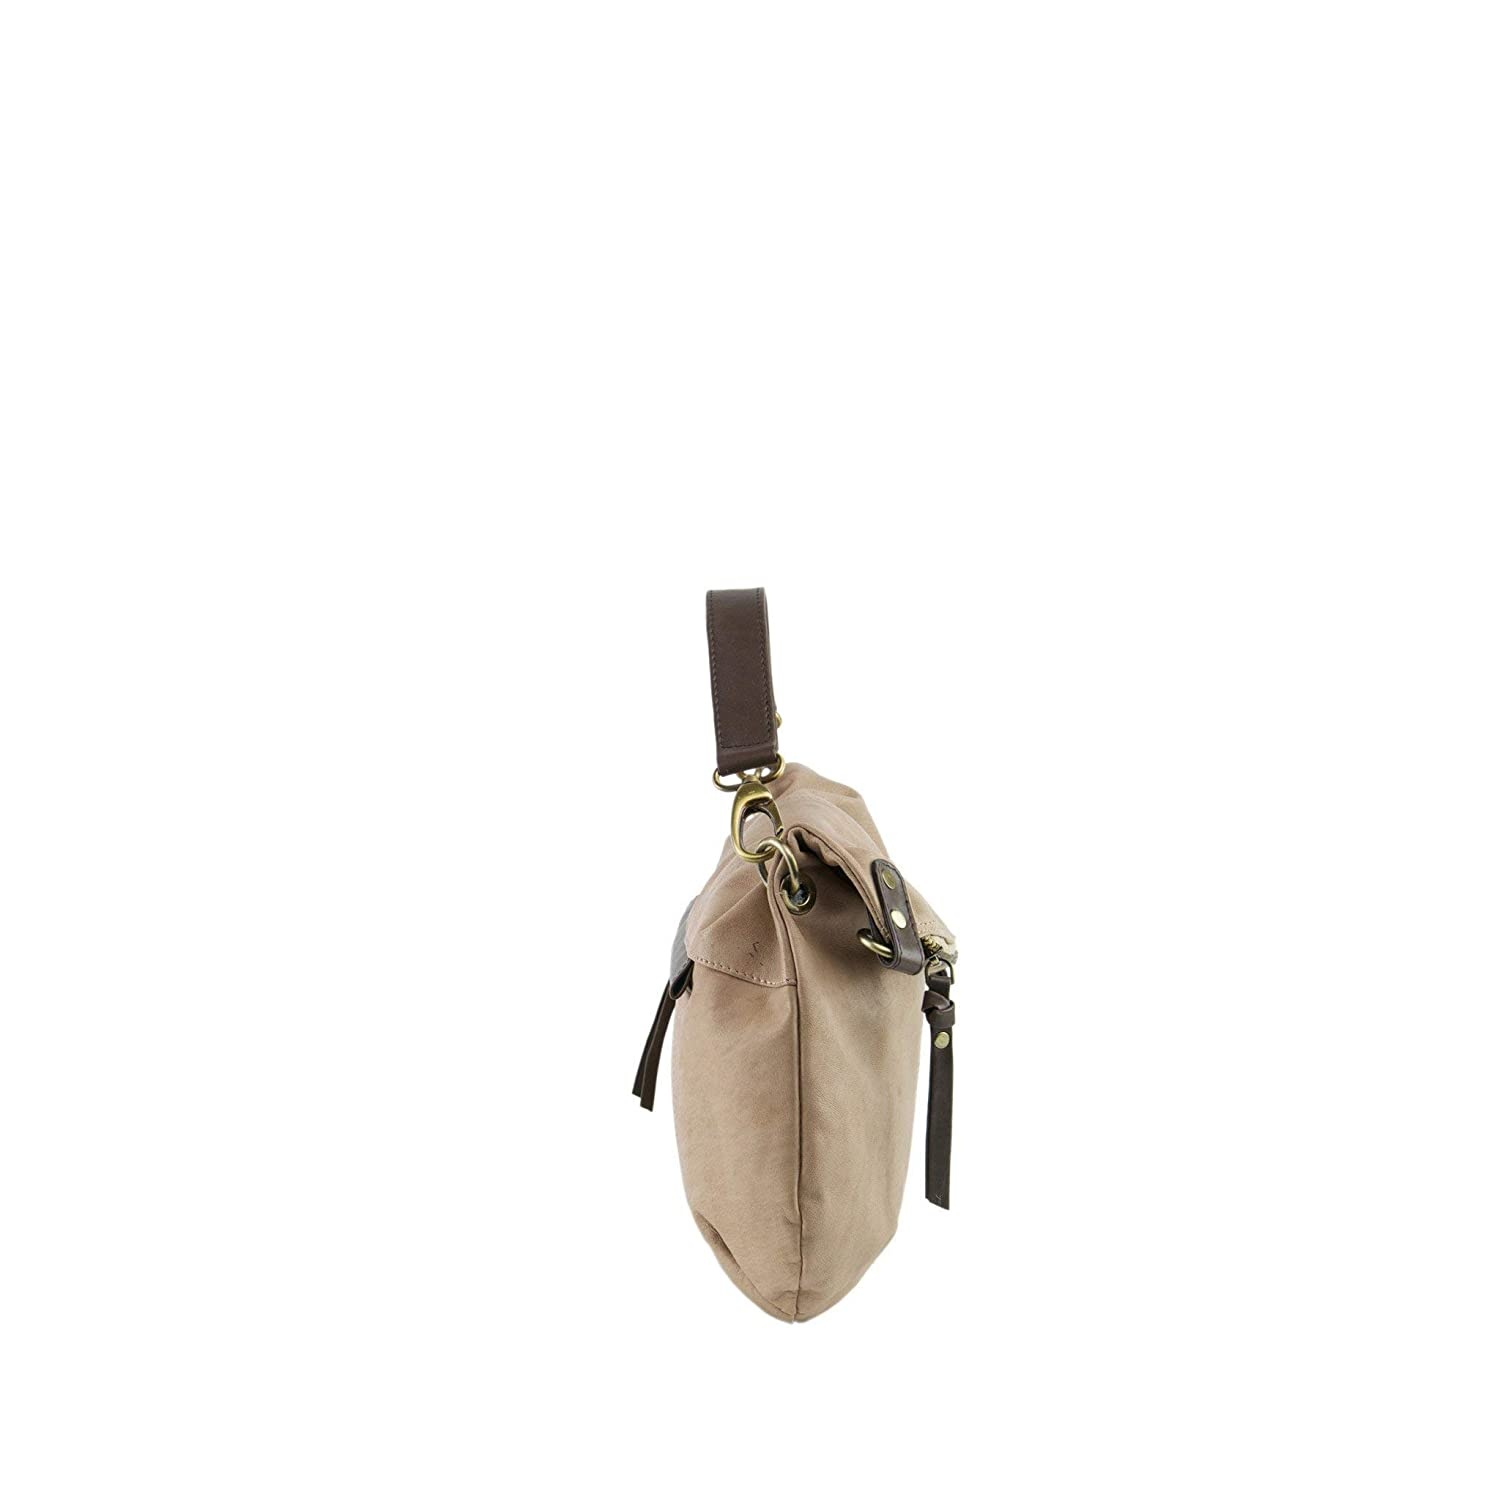 74f6e0944508 Manzoni Biscuit Colored Women s Leather Shoulder Bag  Manzoni  Amazon.in   Shoes   Handbags